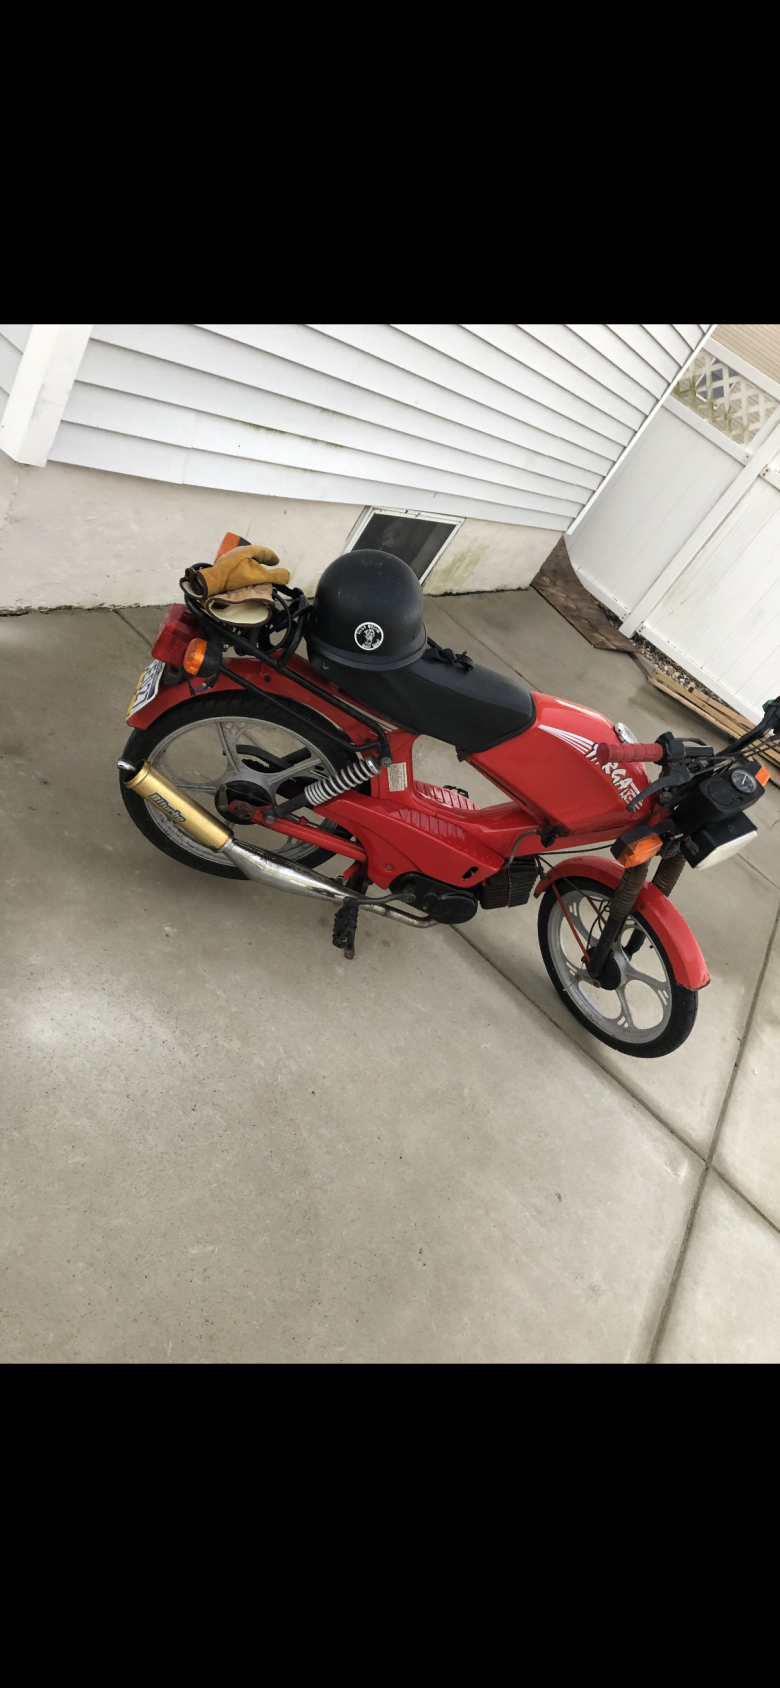 Moped photo for dancooks7